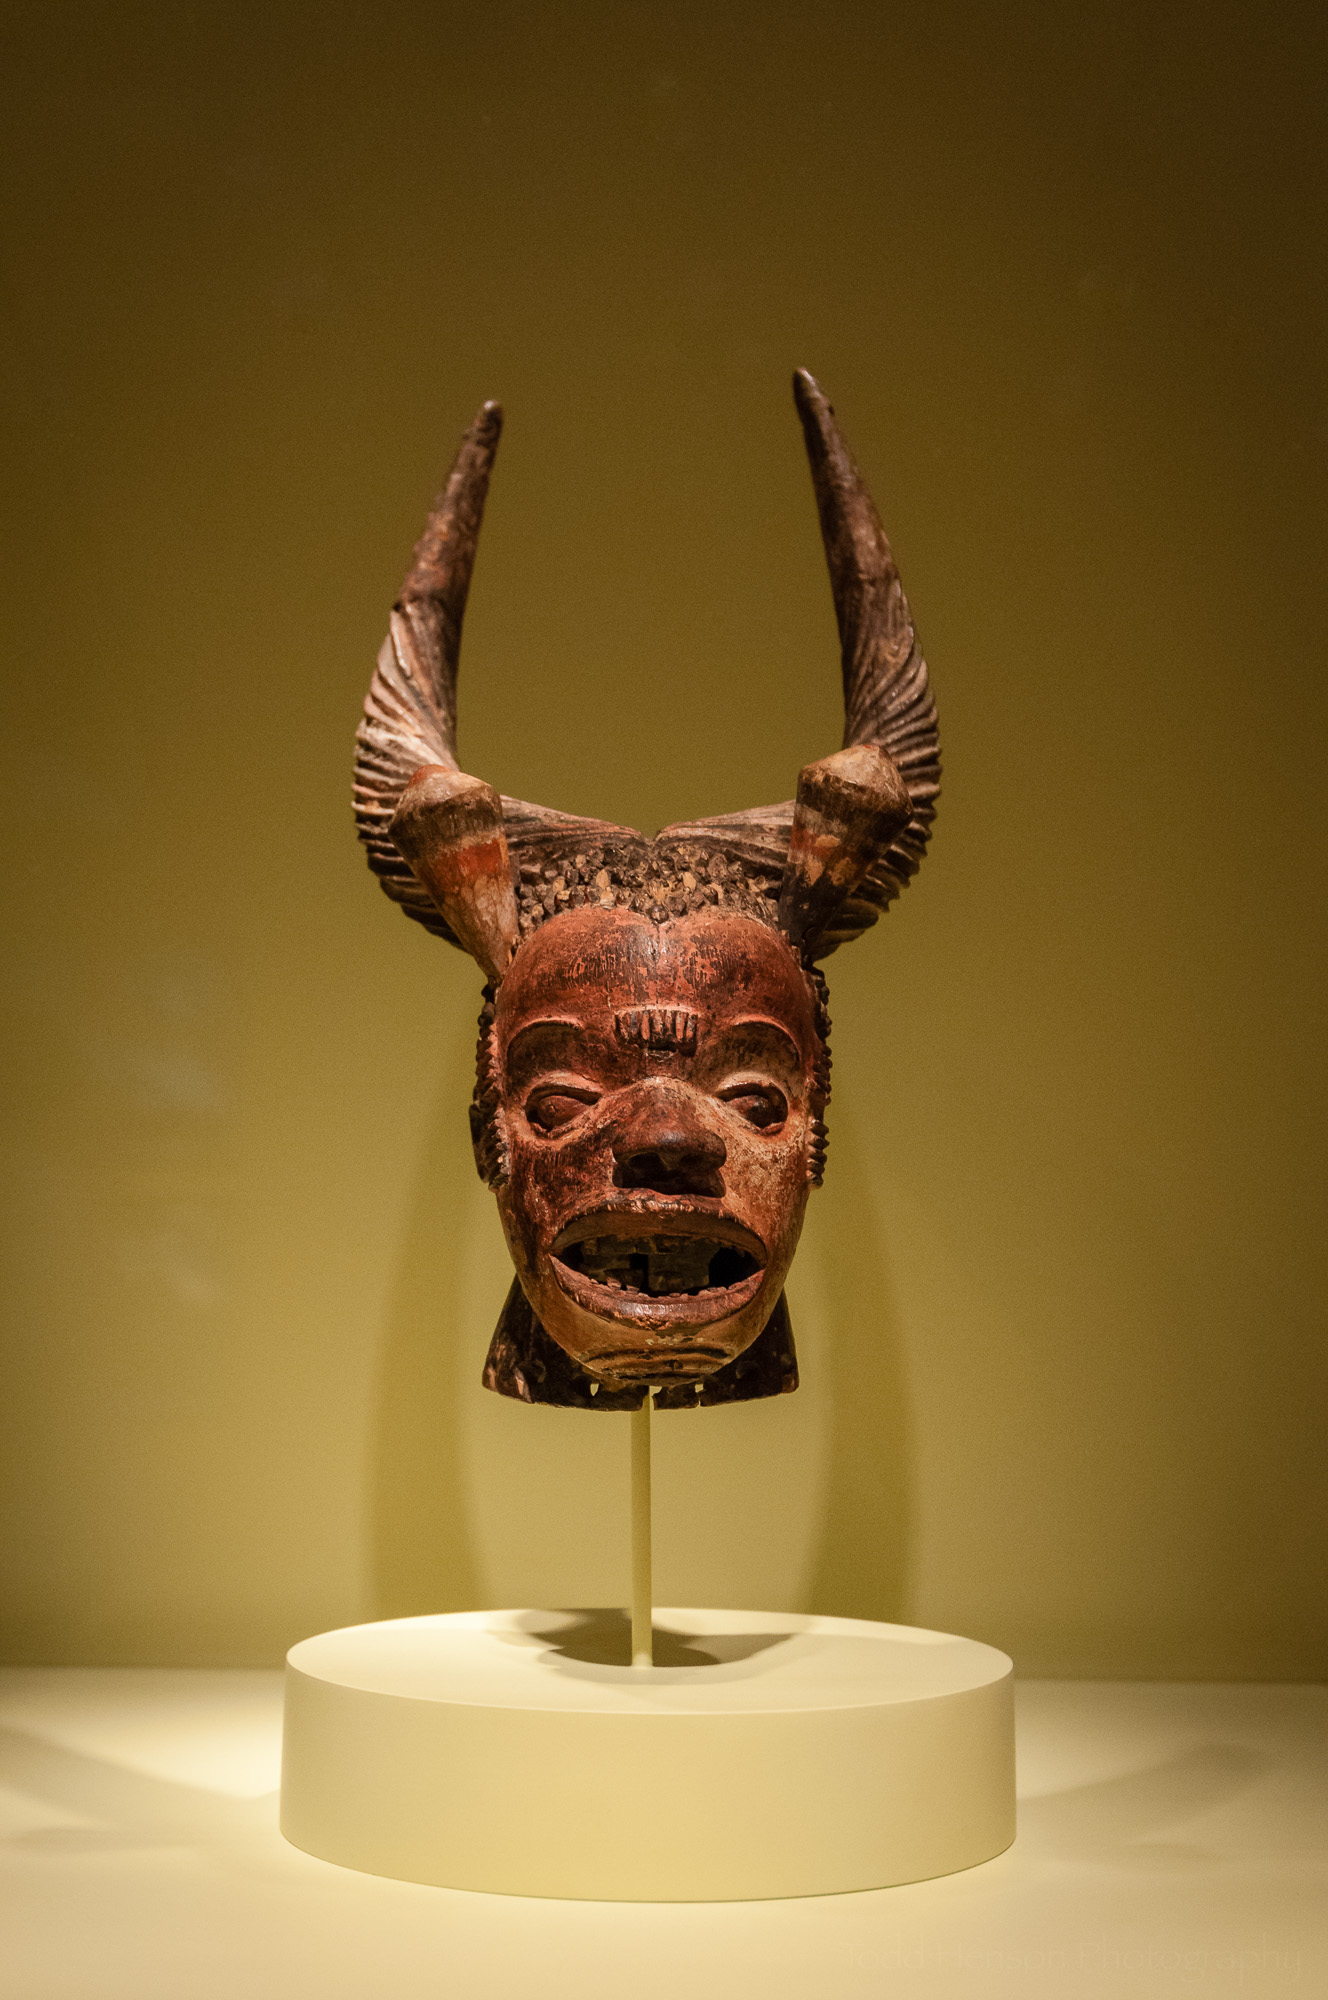 Crest Mask, part of the Walt Disney-Tishman African Art Collection at the National Museum of African Art